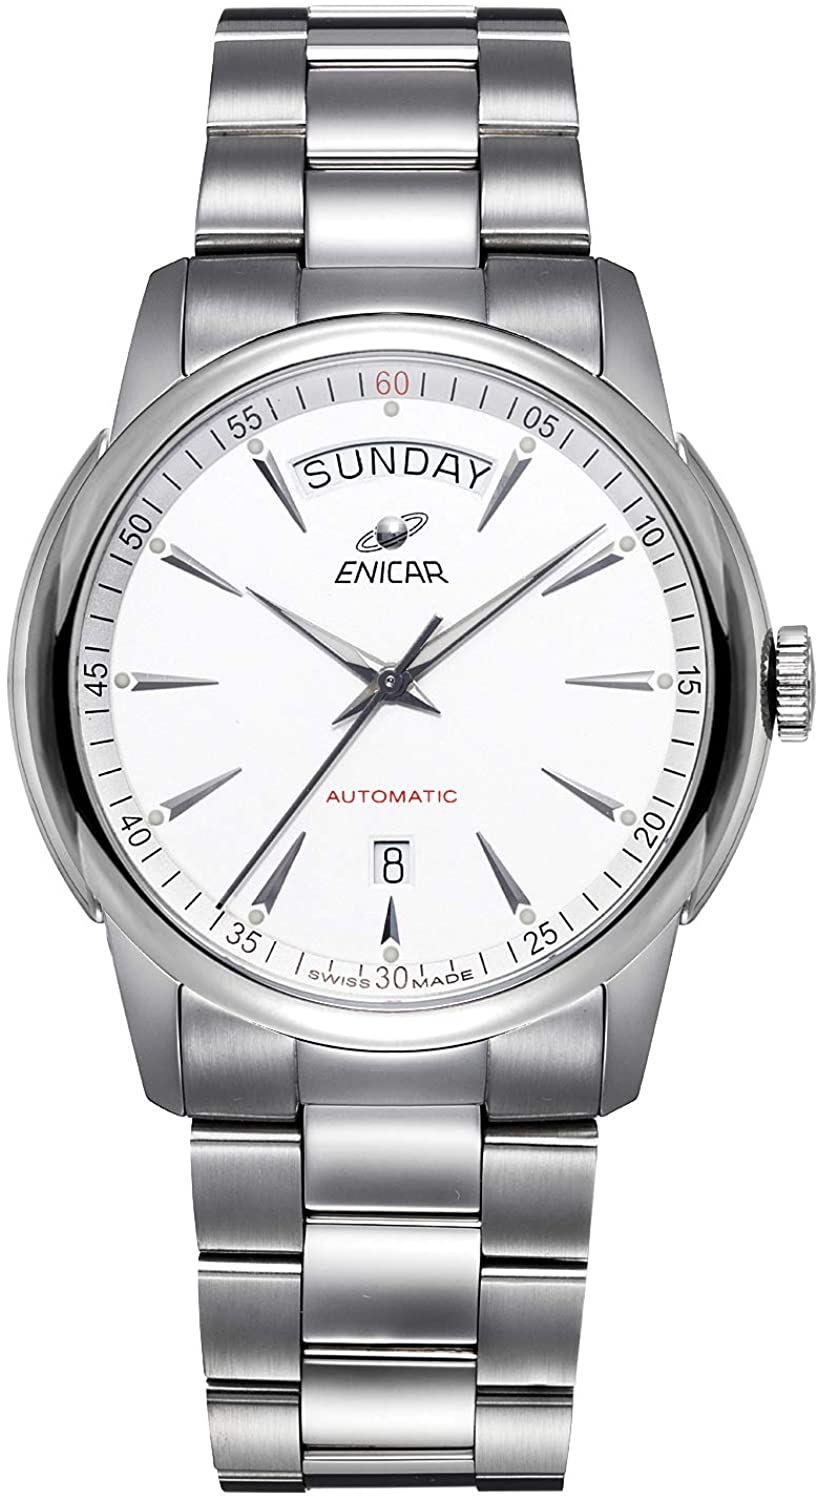 ENICAR Men's Red Label Mechanical Automatic Watch (Model No.: 357aA)